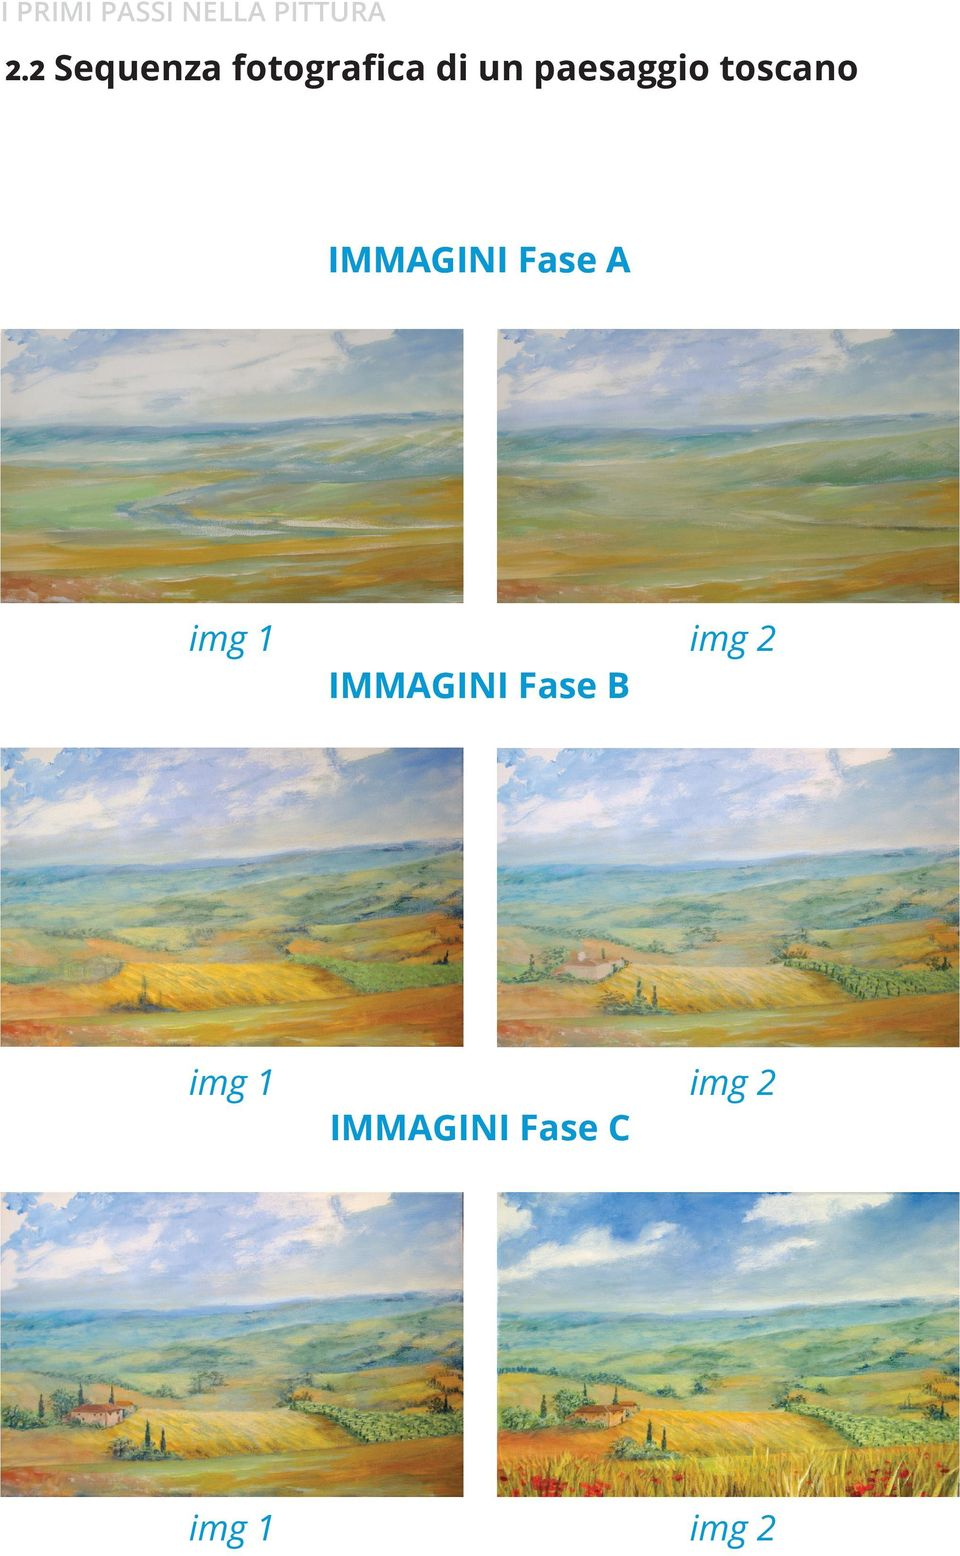 toscano IMMAGINI Fase A img 1 img 1 img